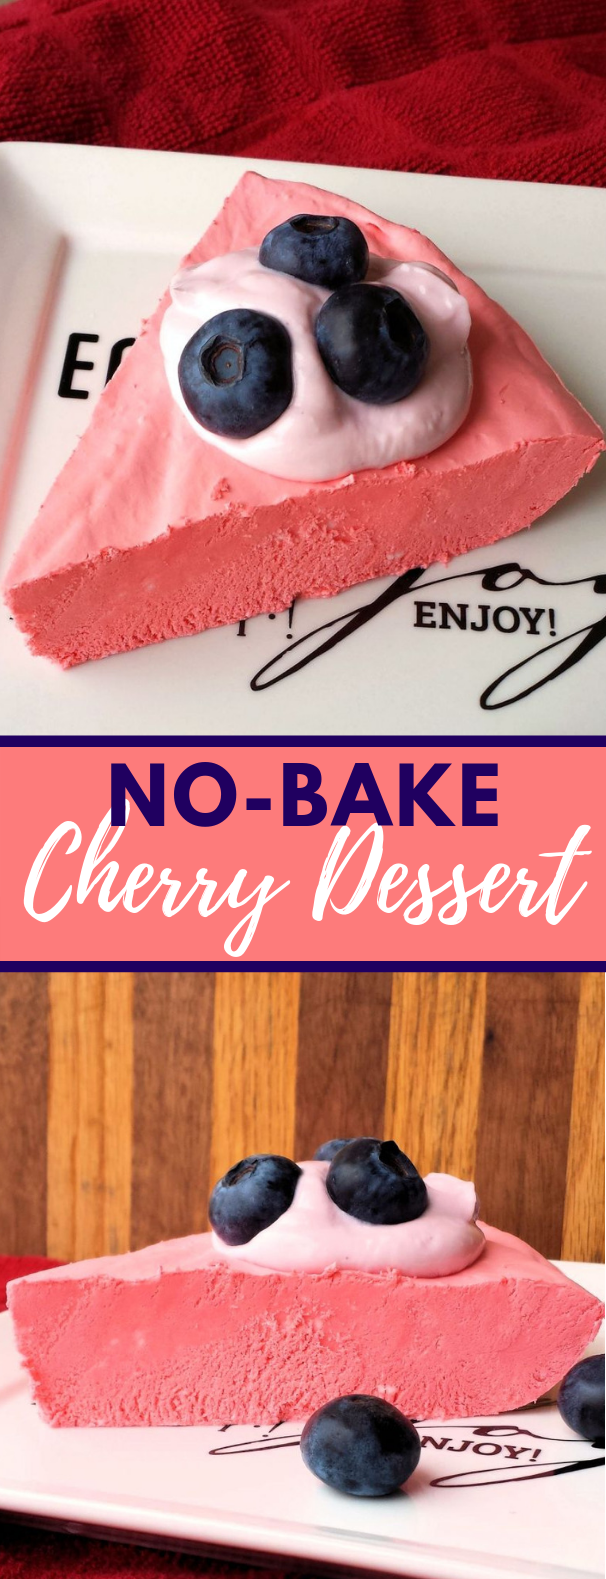 No-Bake Cherry Dessert #cake #strawberry